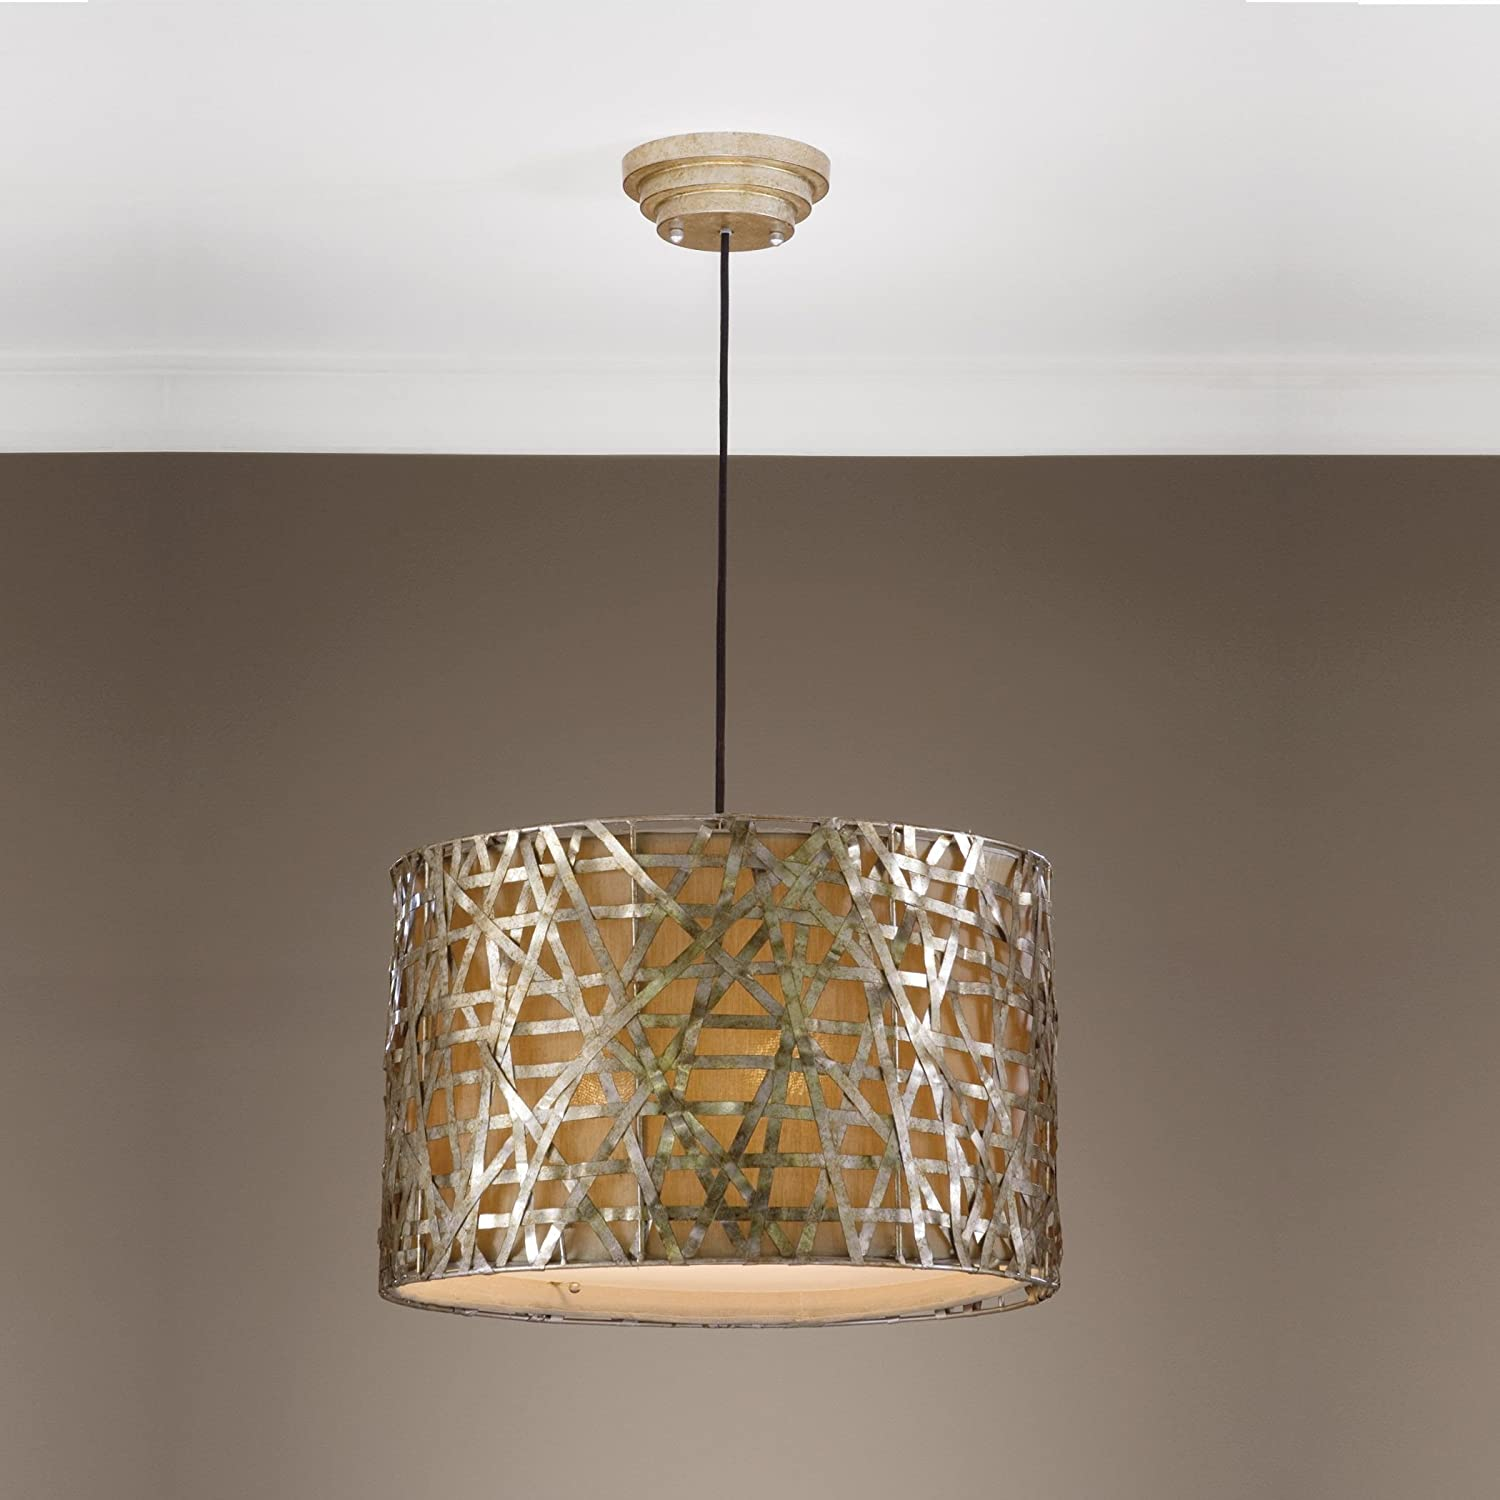 drum shade pendant lighting. amazoncom 22 drum shade pendant lighting